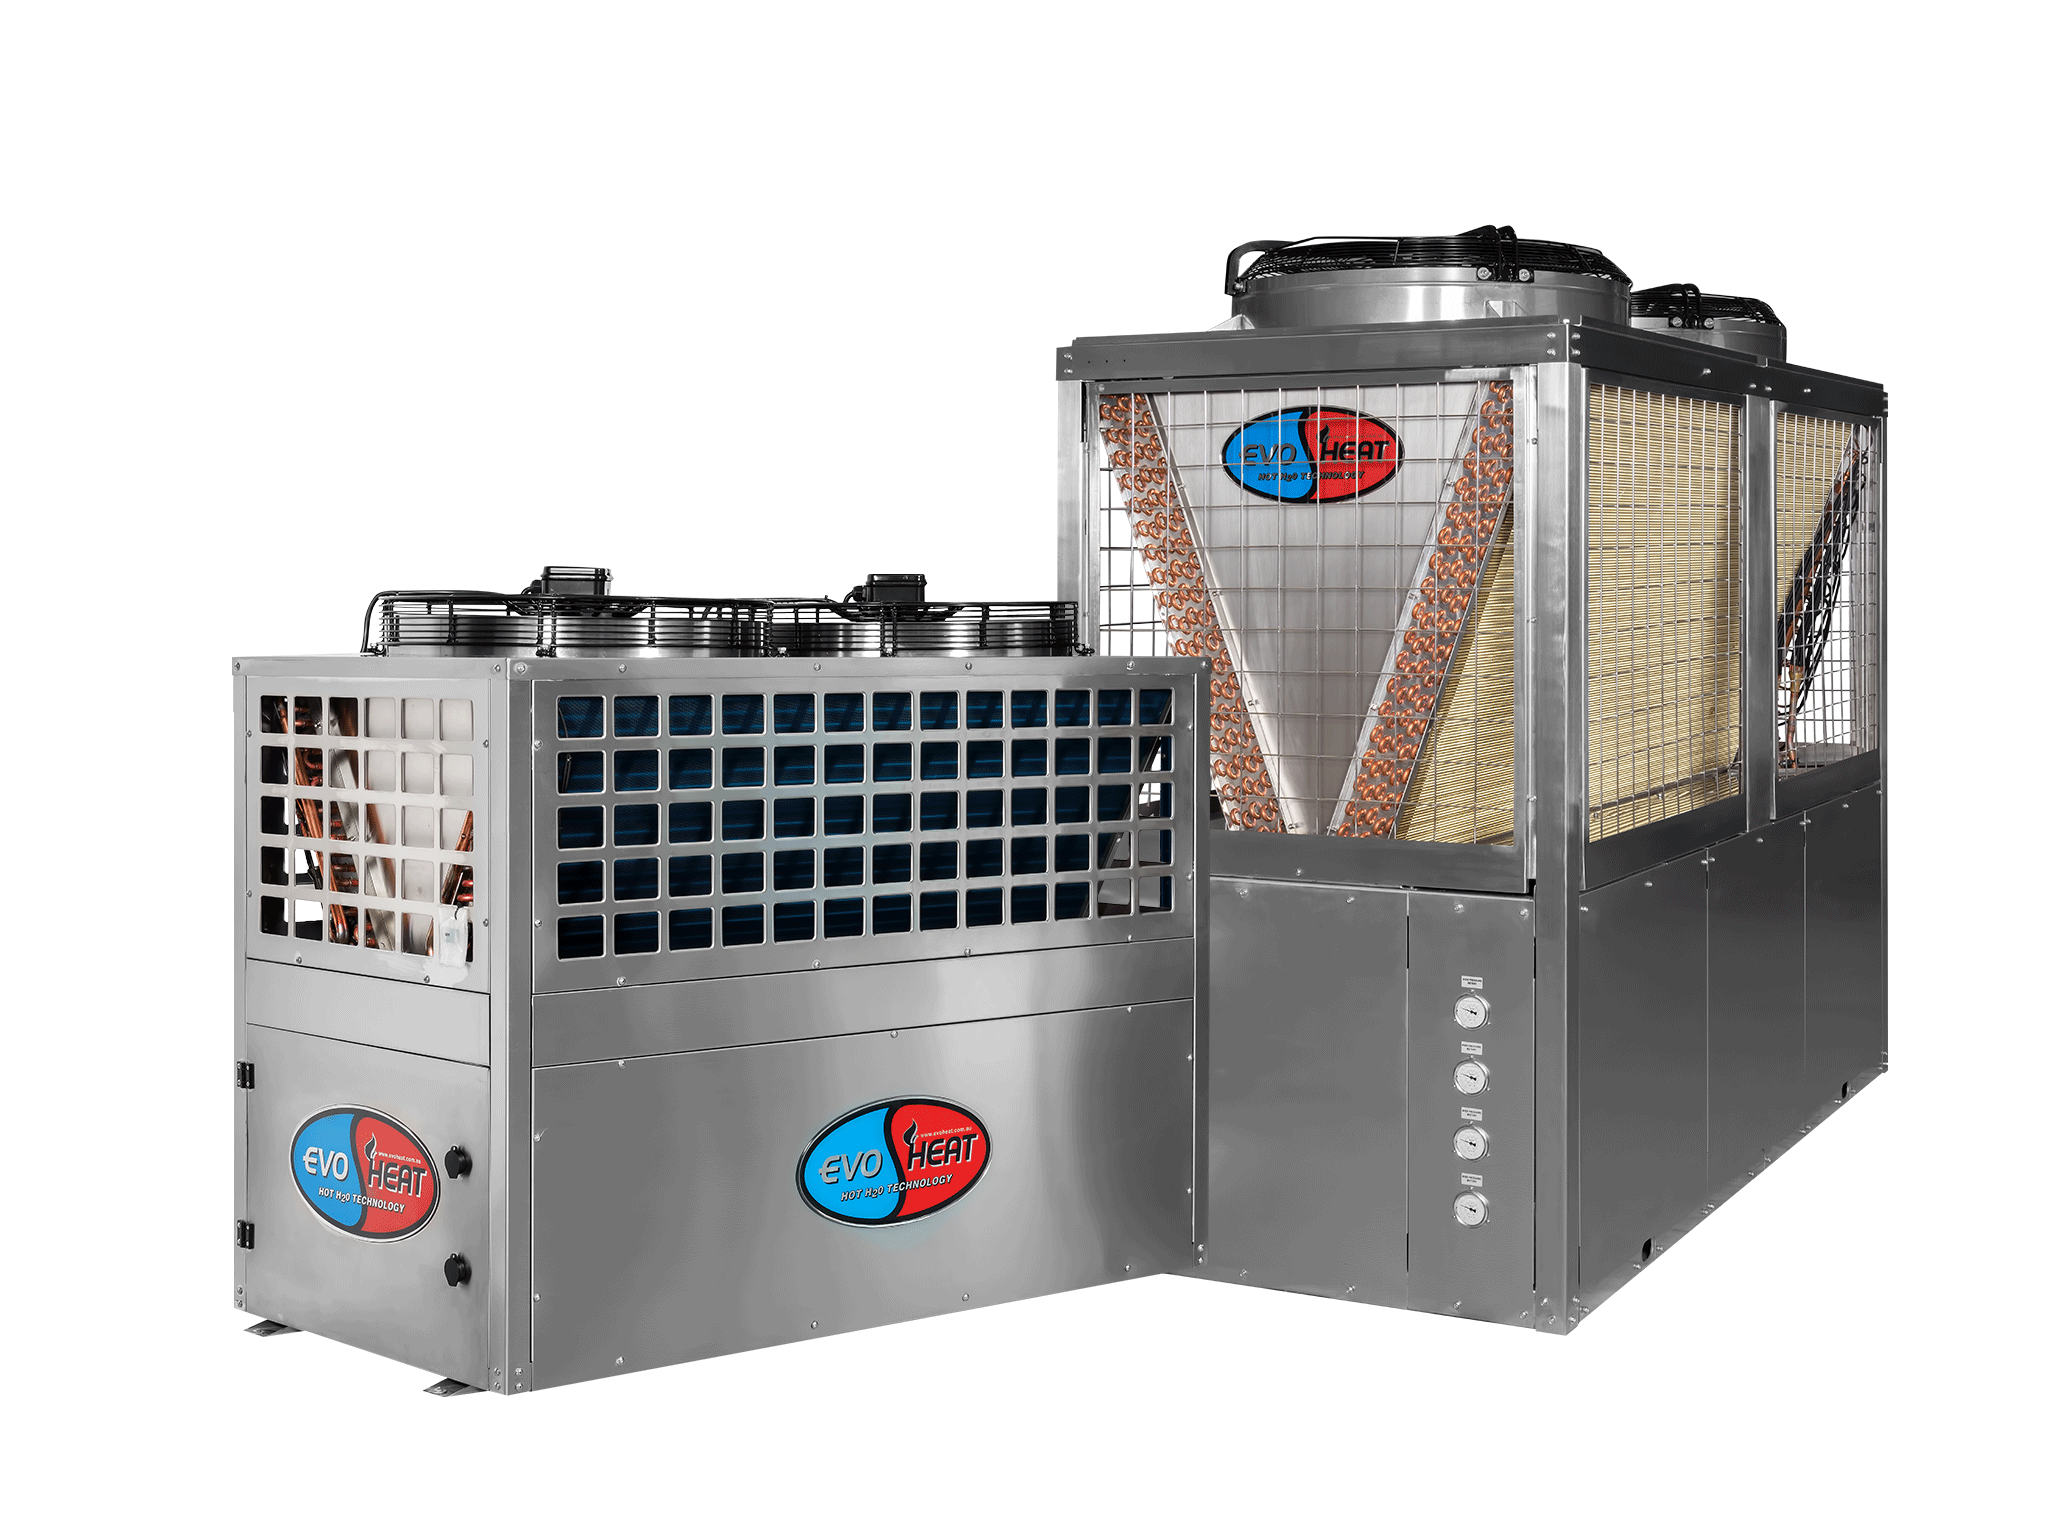 Heat Pump Hot Water Savings - Sunpak Hot Water Specialists